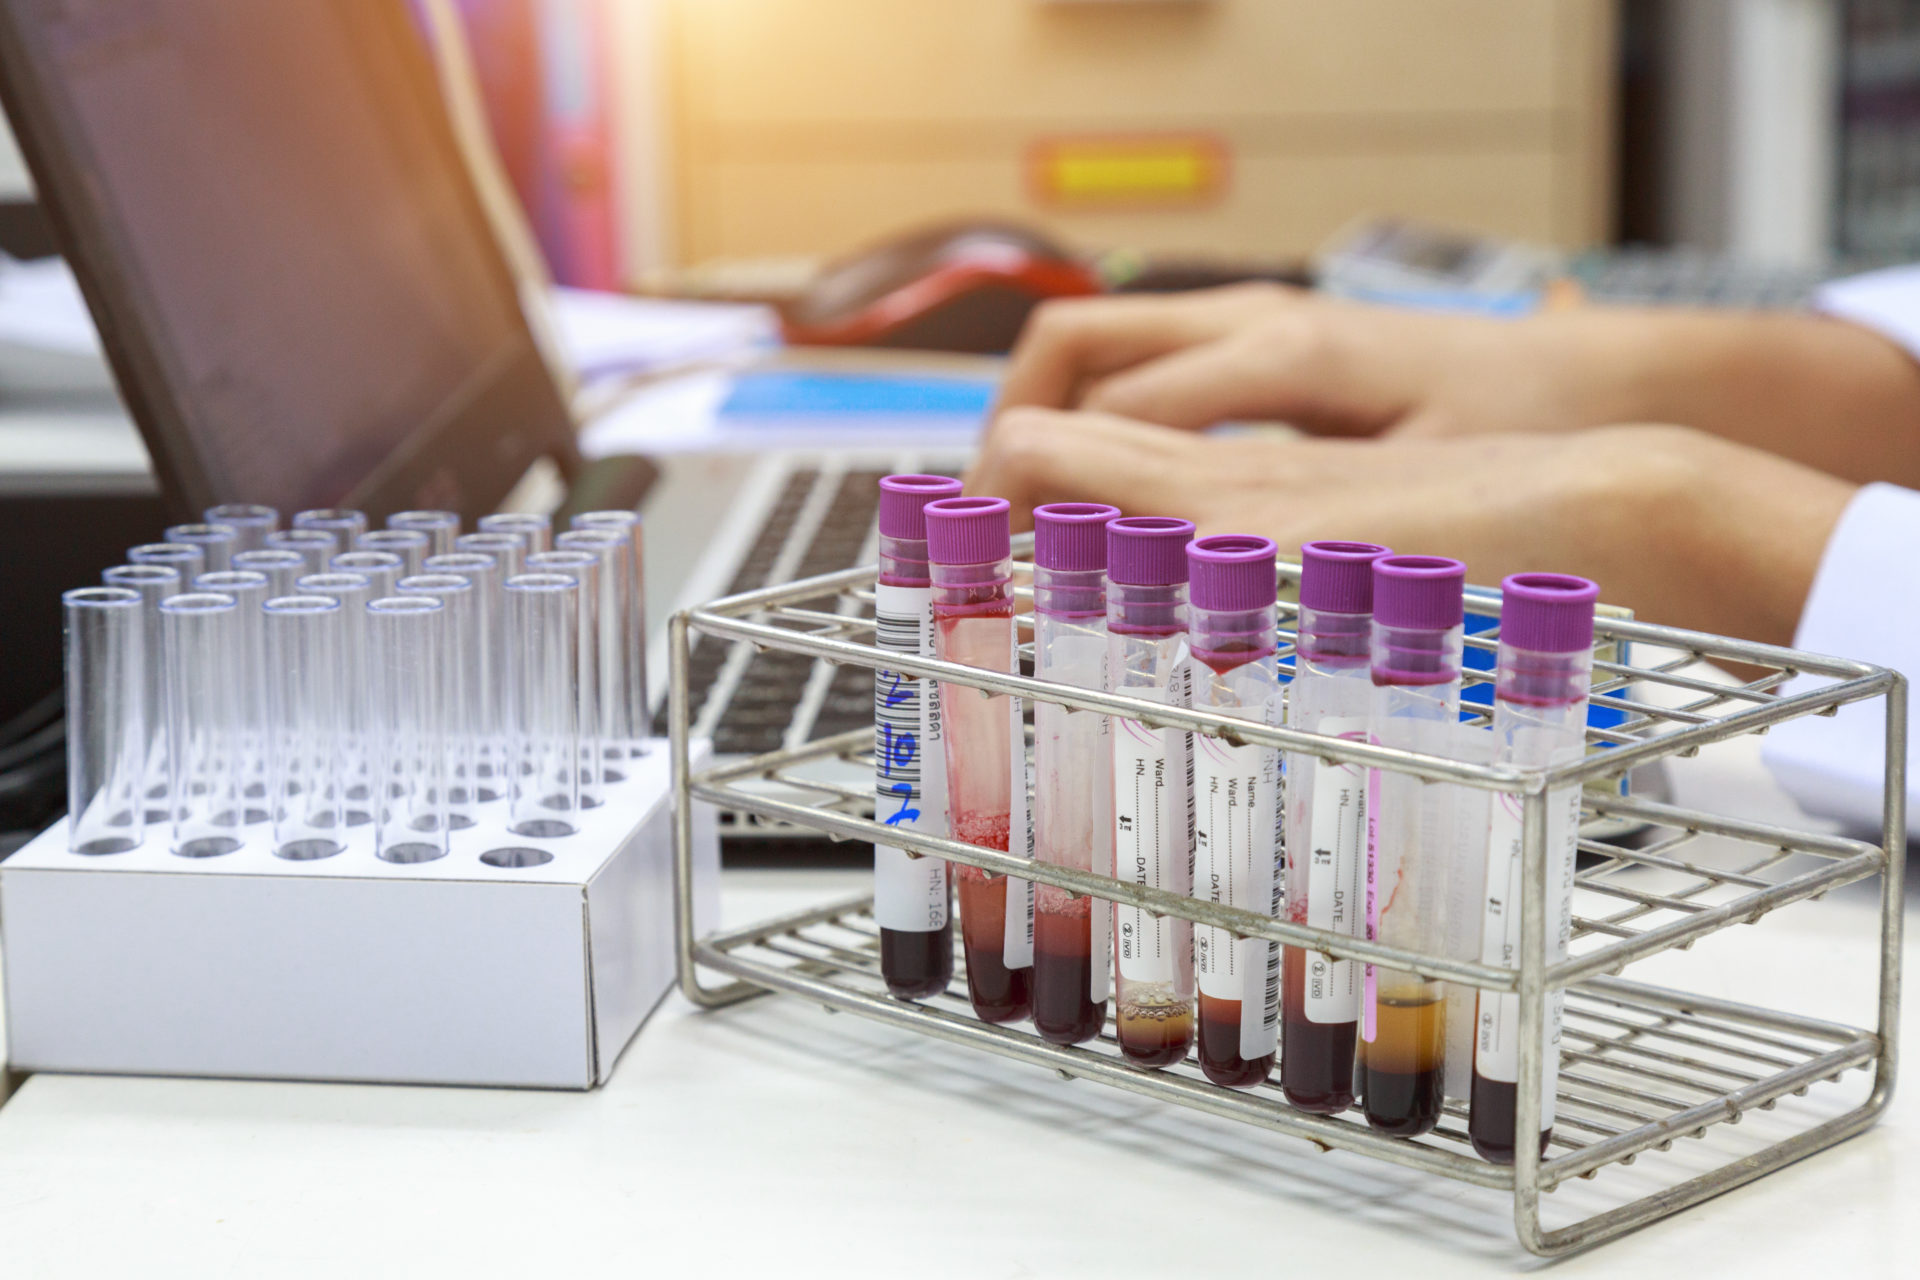 Cell-Testing: A simple test can help you avoid some very scary diseases. Cell testing is available at every Florida Wellness Medical Group location. For more information on disease prevention, call our offices at: (844) 935-5669